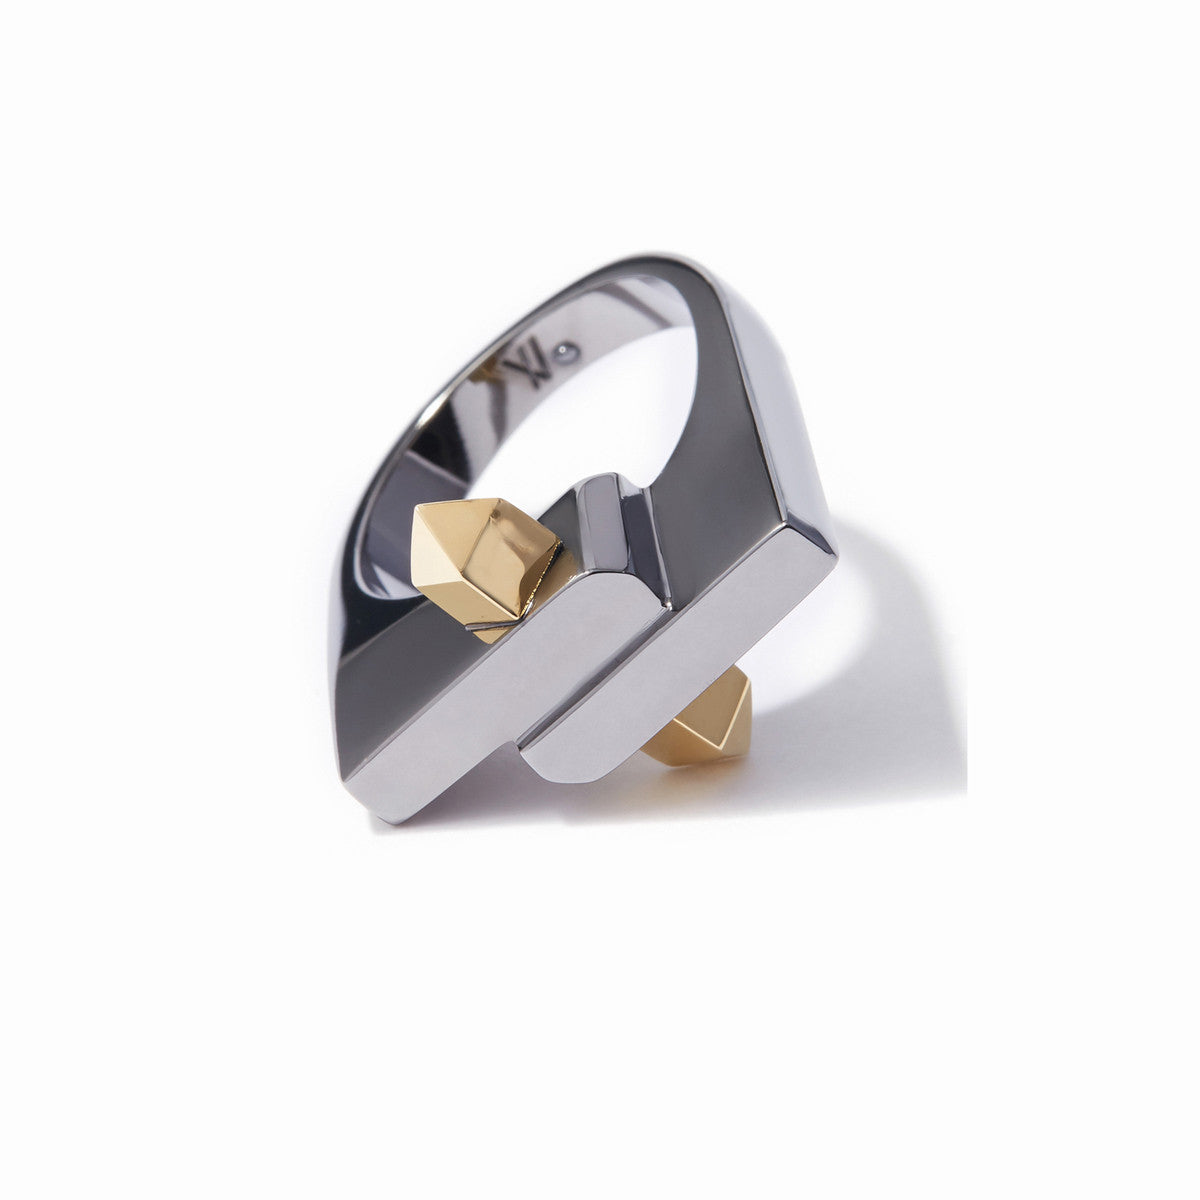 Aurum Two-Tone Ring -  2 Tone Gold and Hematite